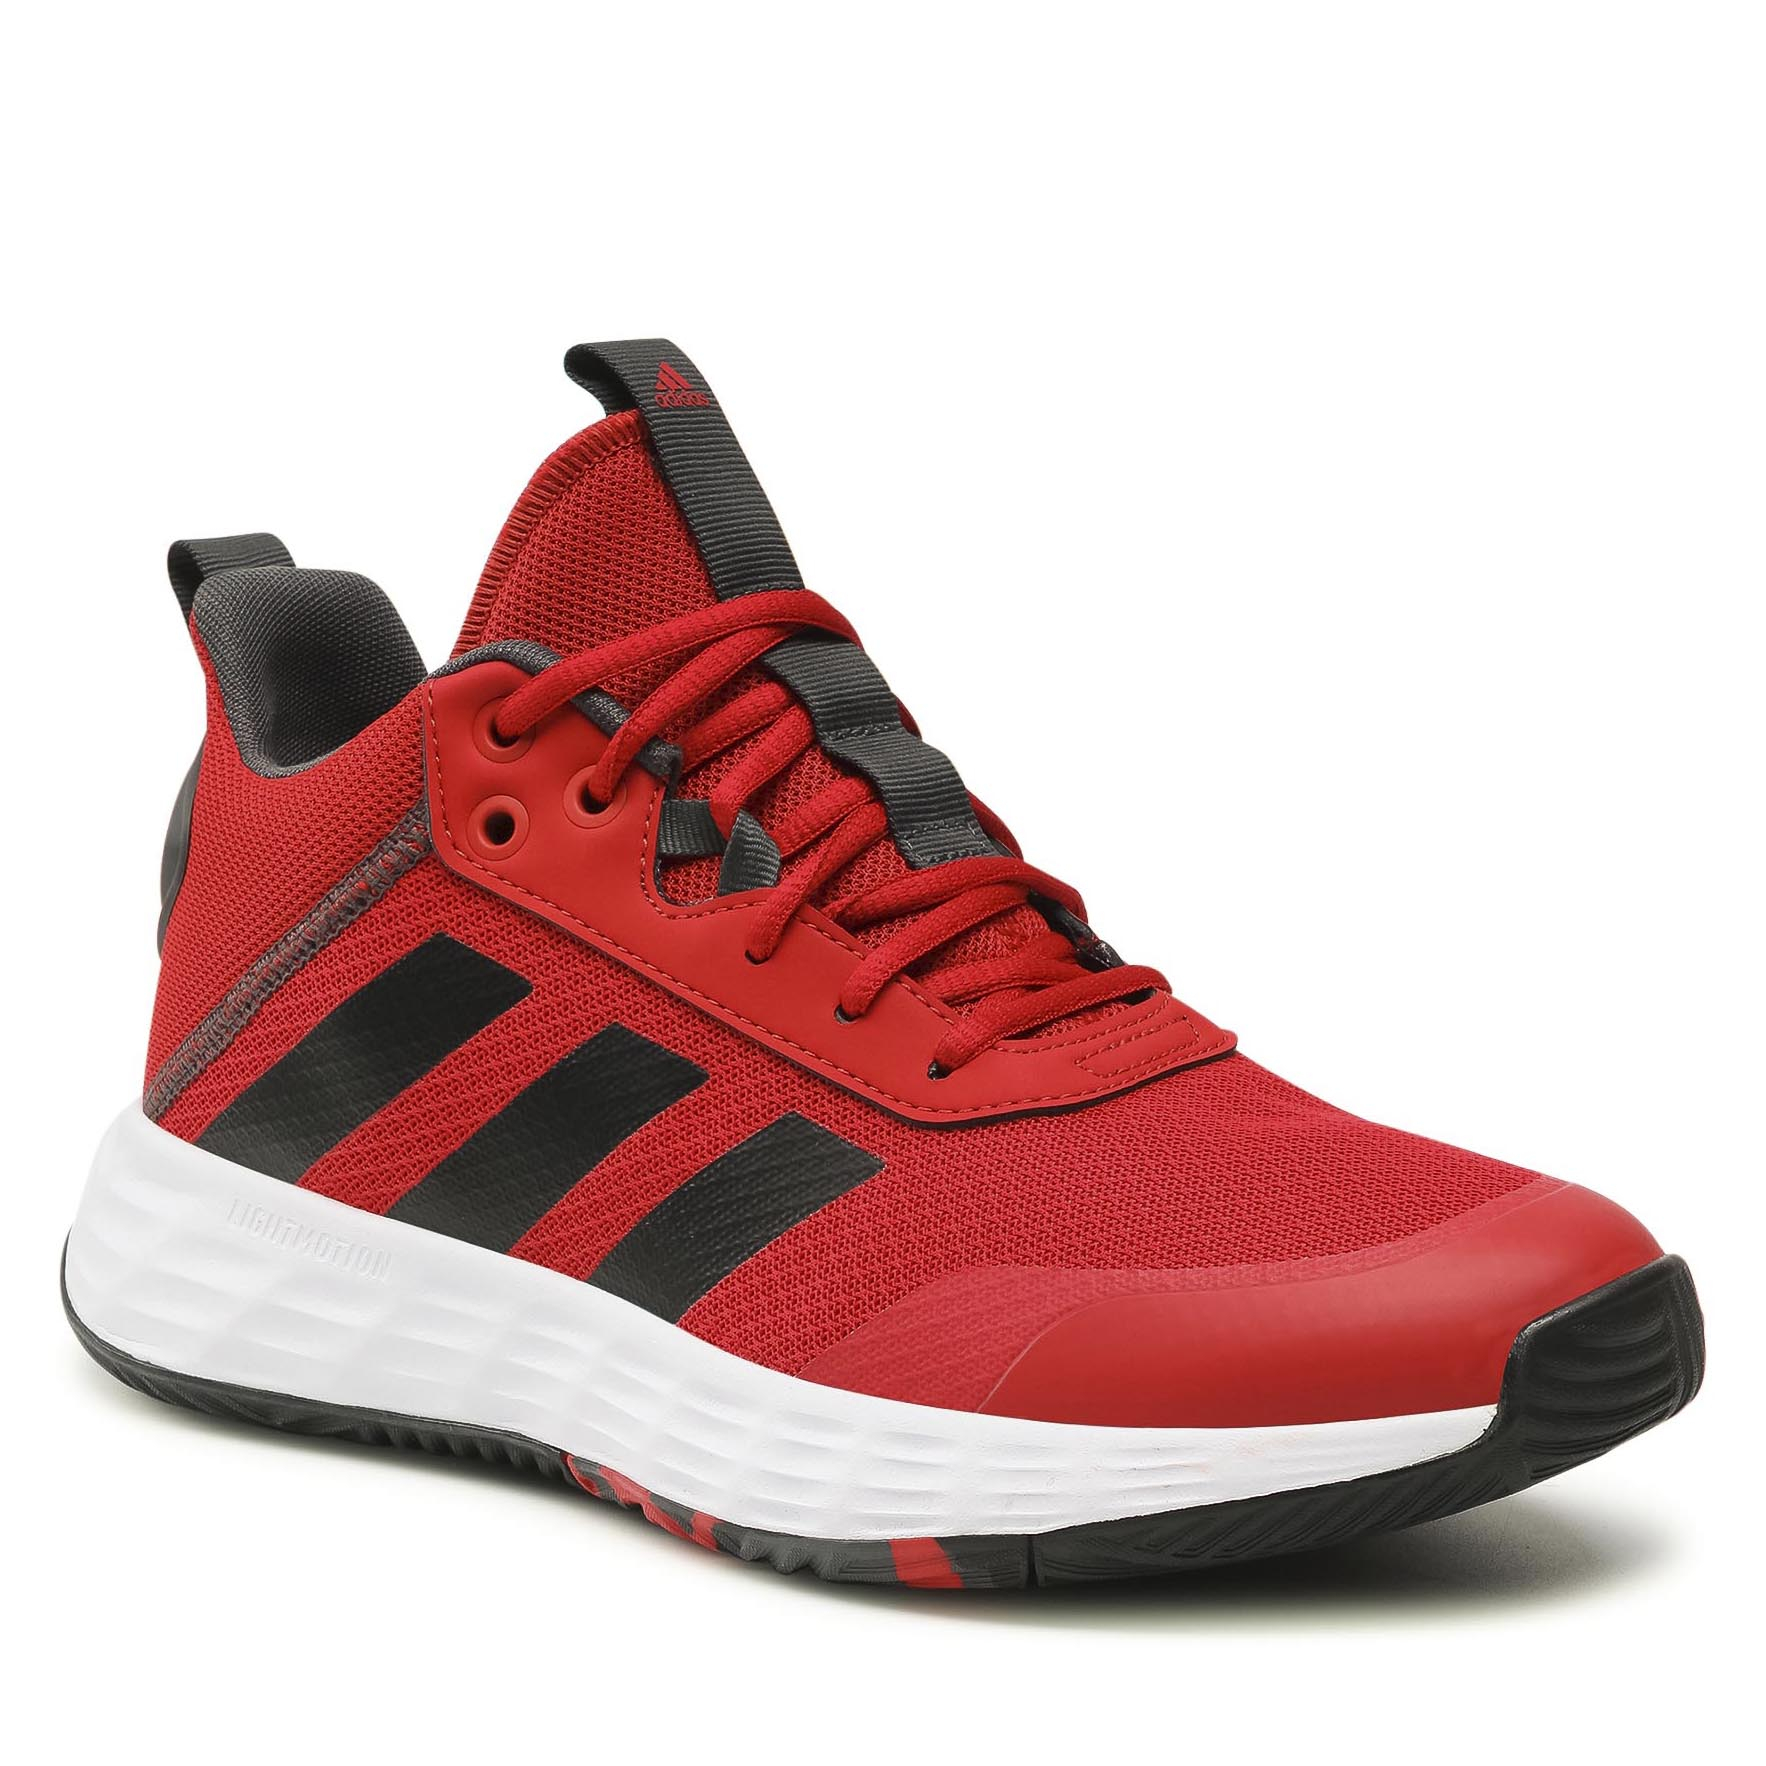 Image of Schuhe adidas - Ownthegame 2.0 H00466 Red